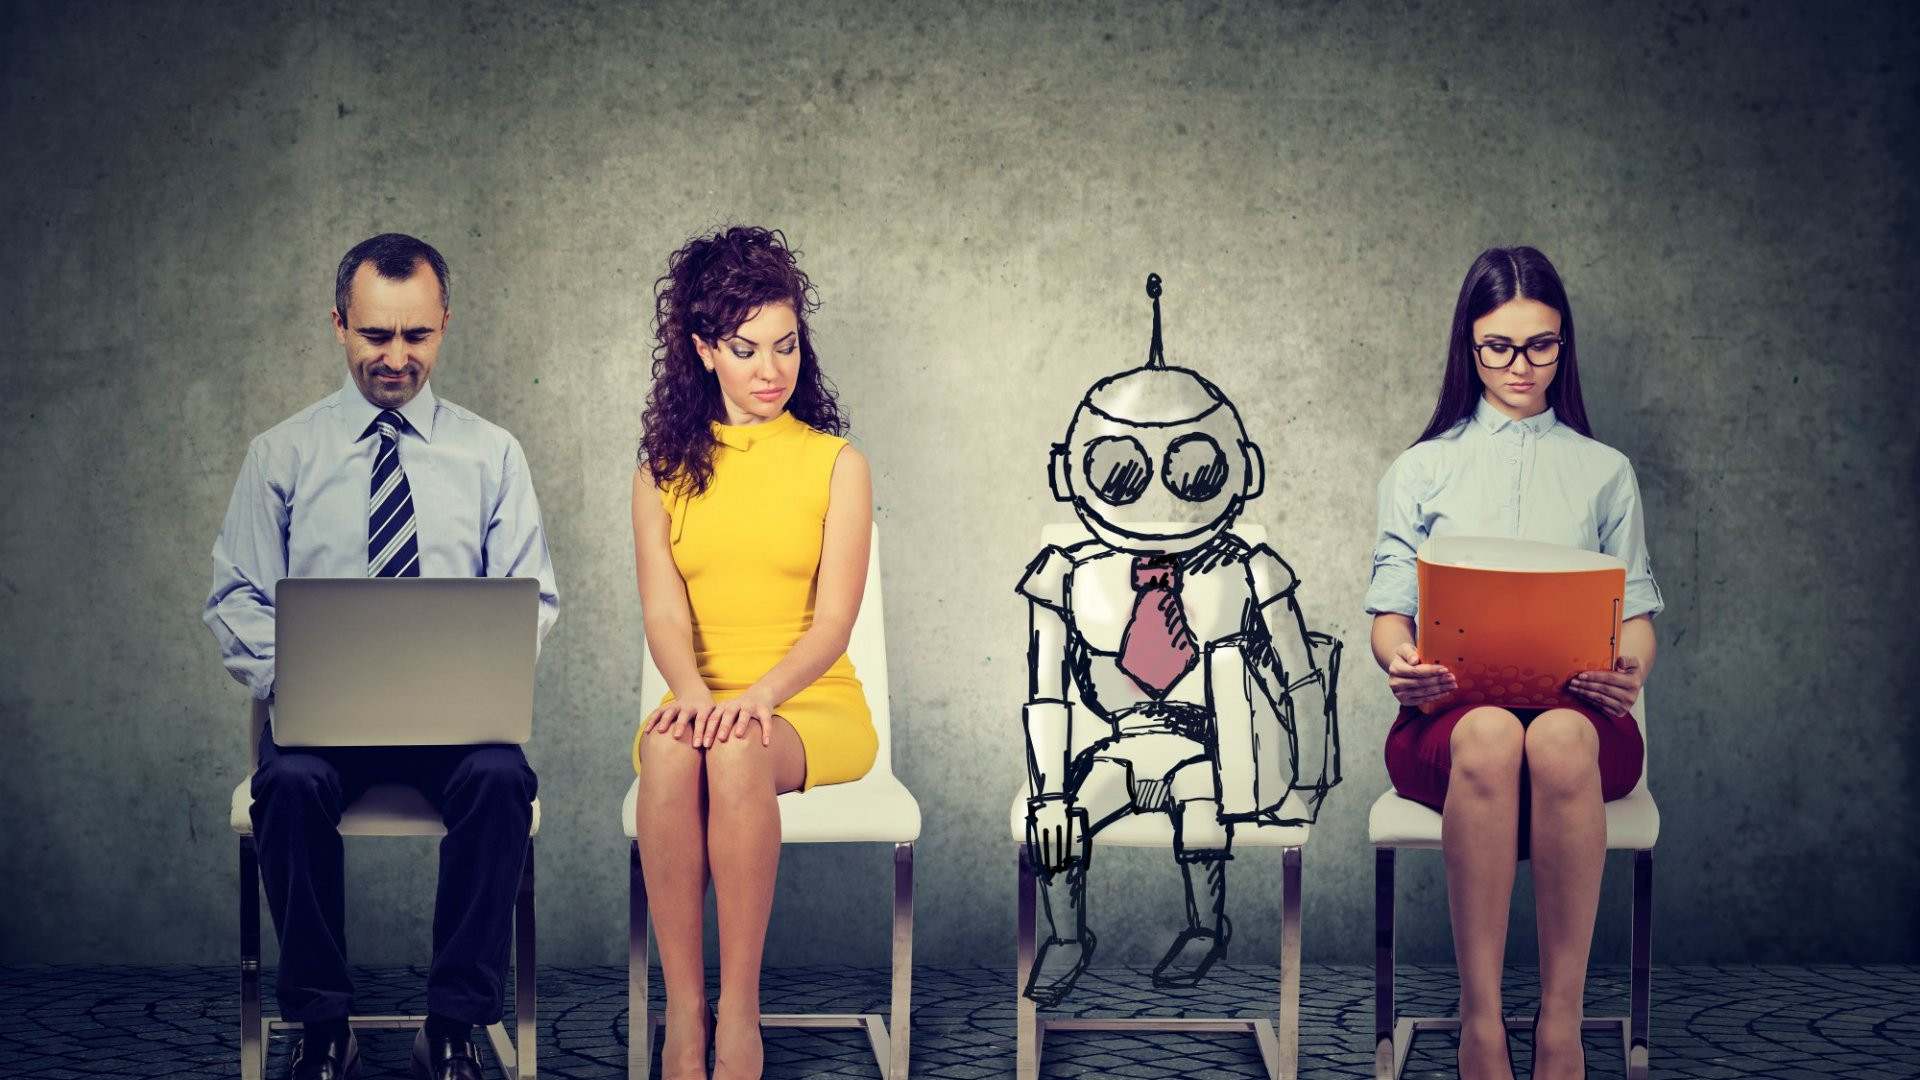 What Roles Will Humans Play in the AI Economy of the Future?